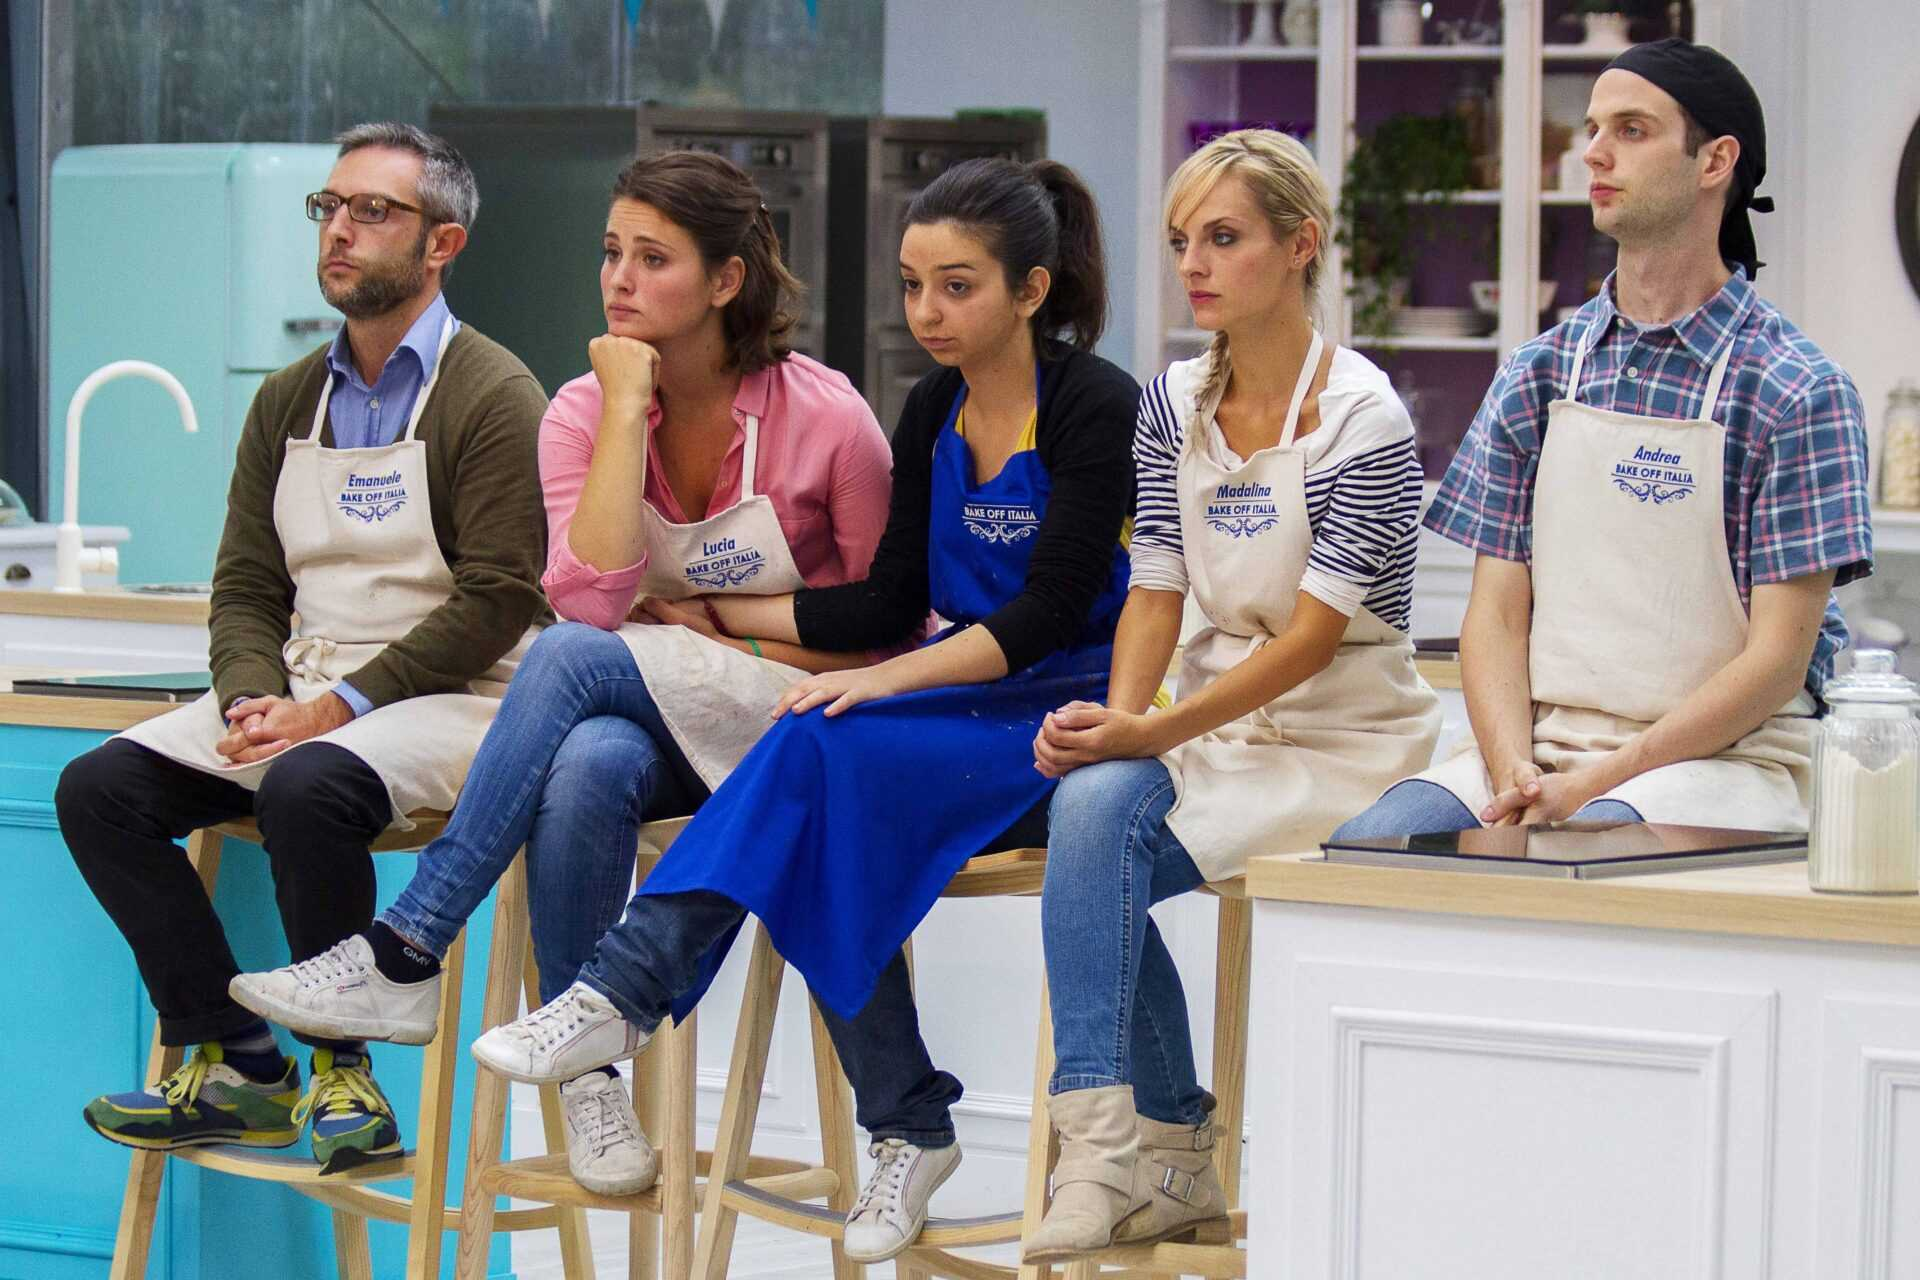 Bake Off Italia: quarto appuntamento, continua la gara | Digitale terrestre: Dtti.it